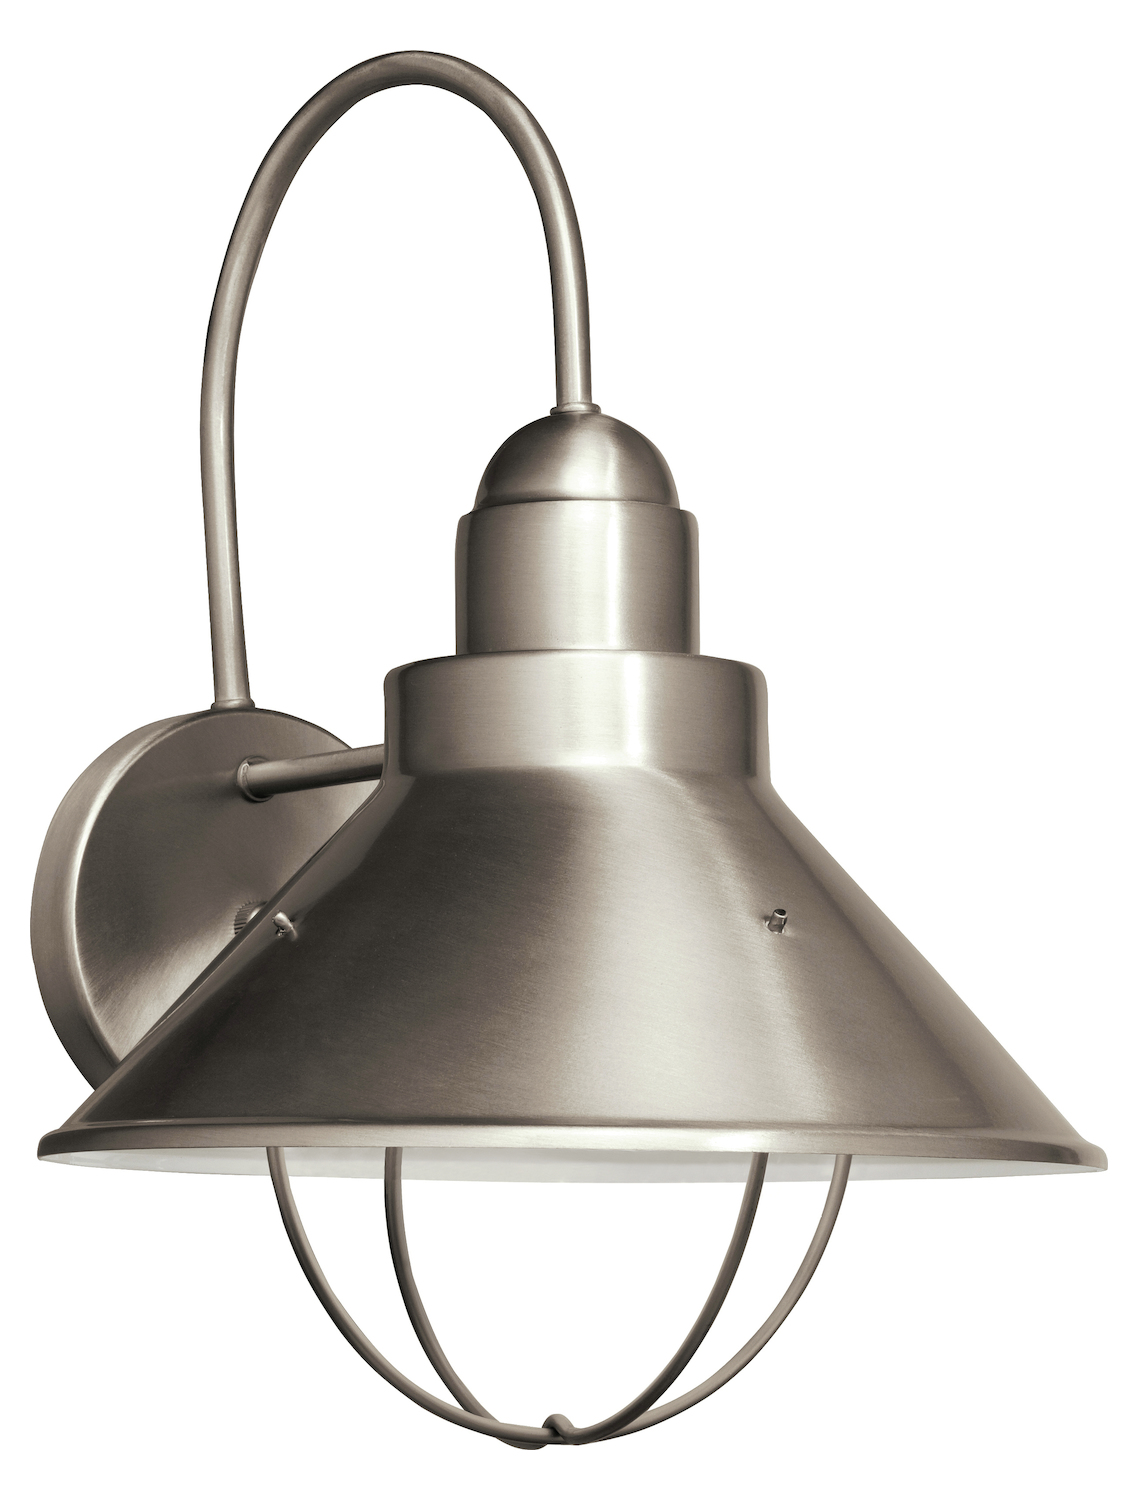 Kichler Nickel Seaside 1 Light 14